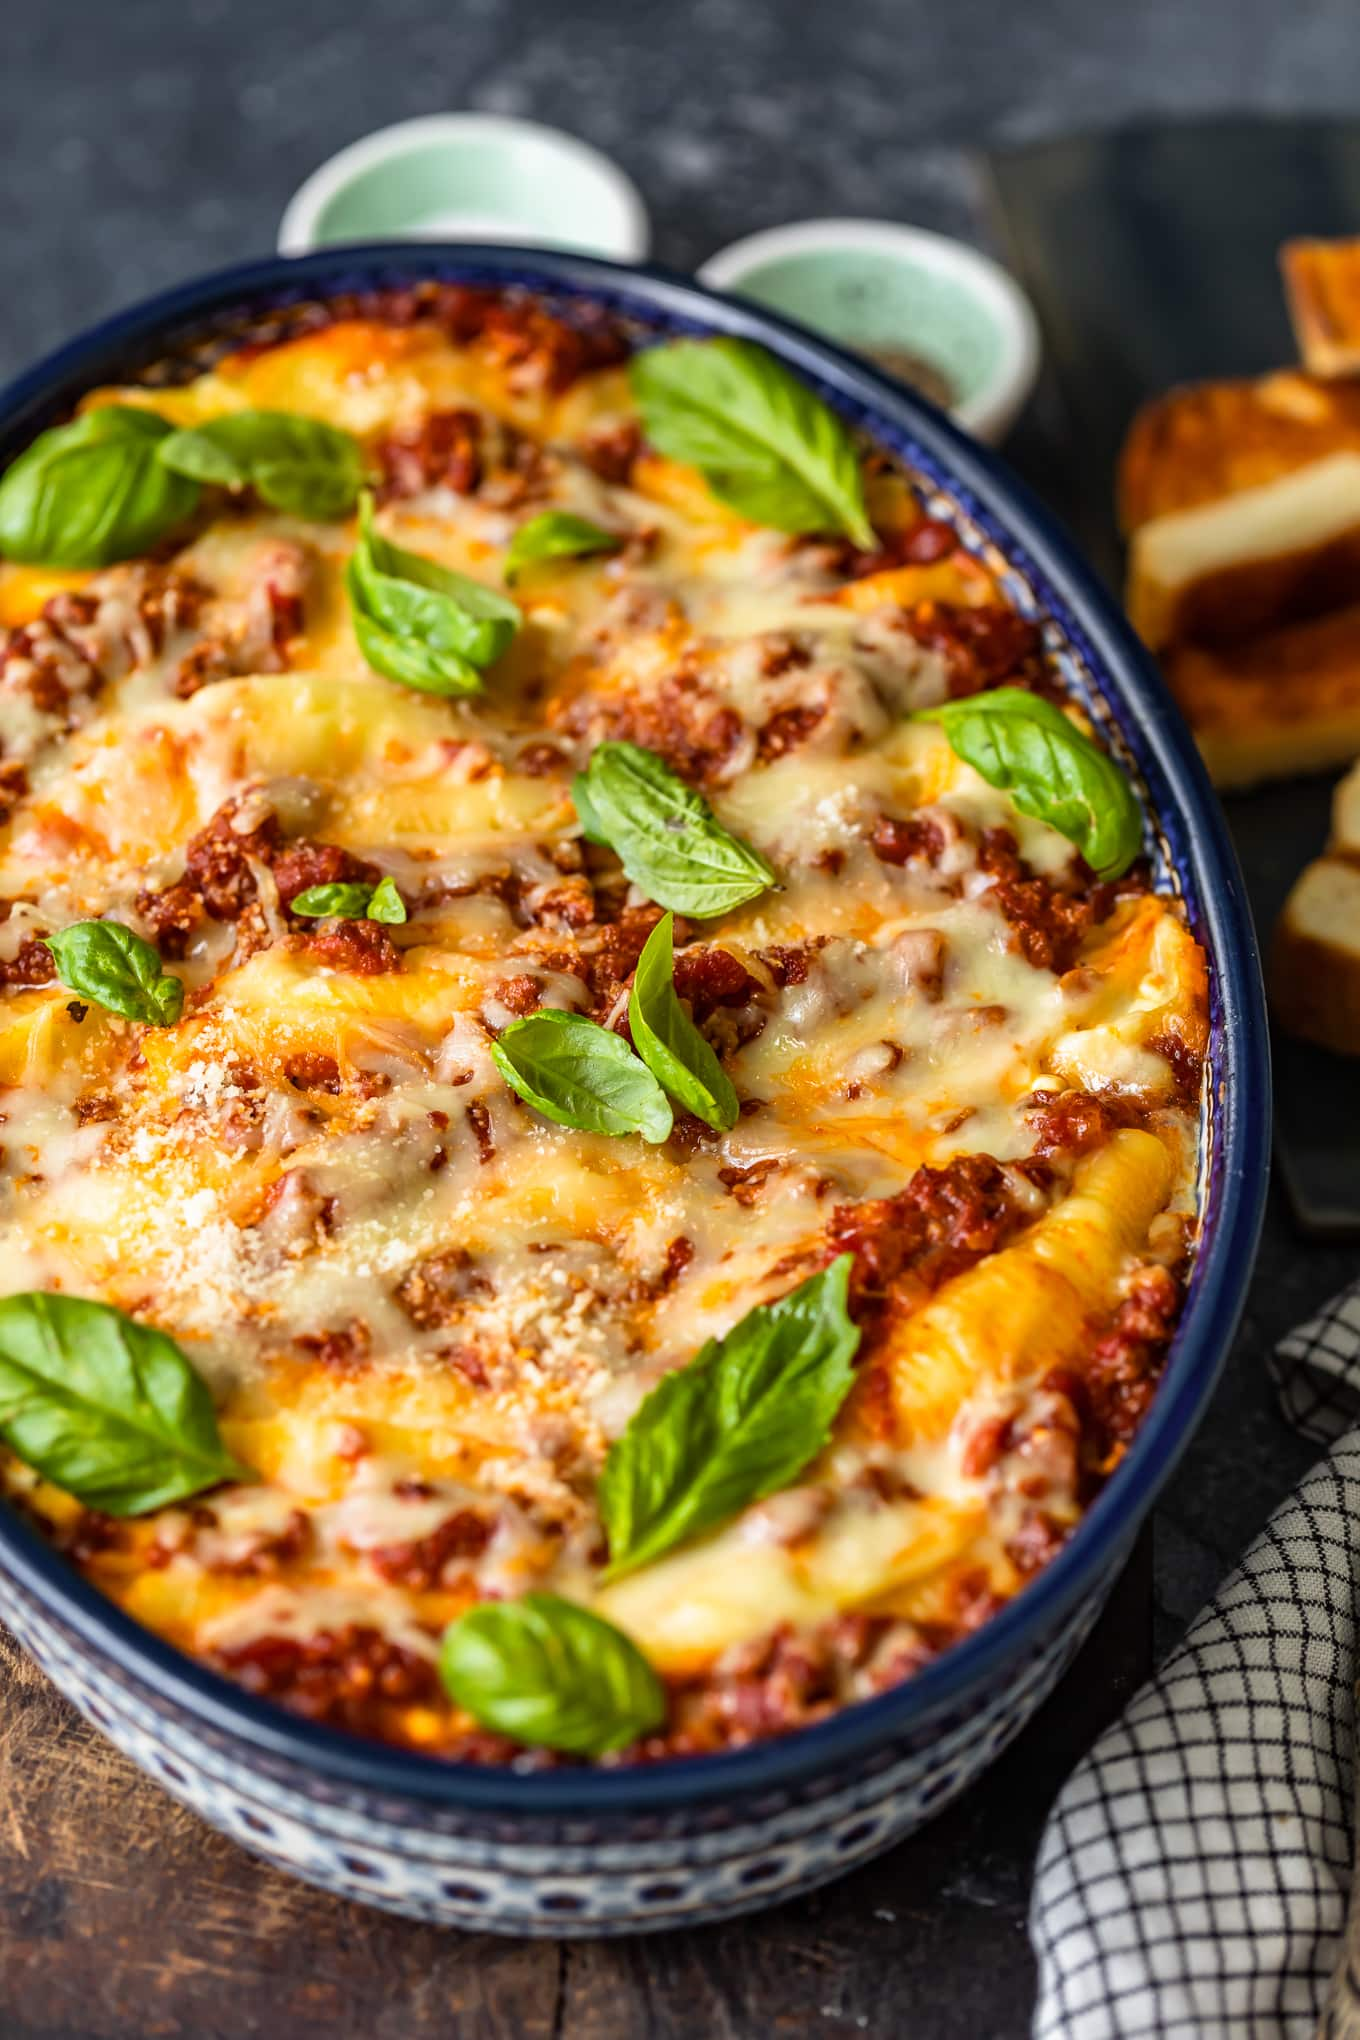 baking dish filled with pasta